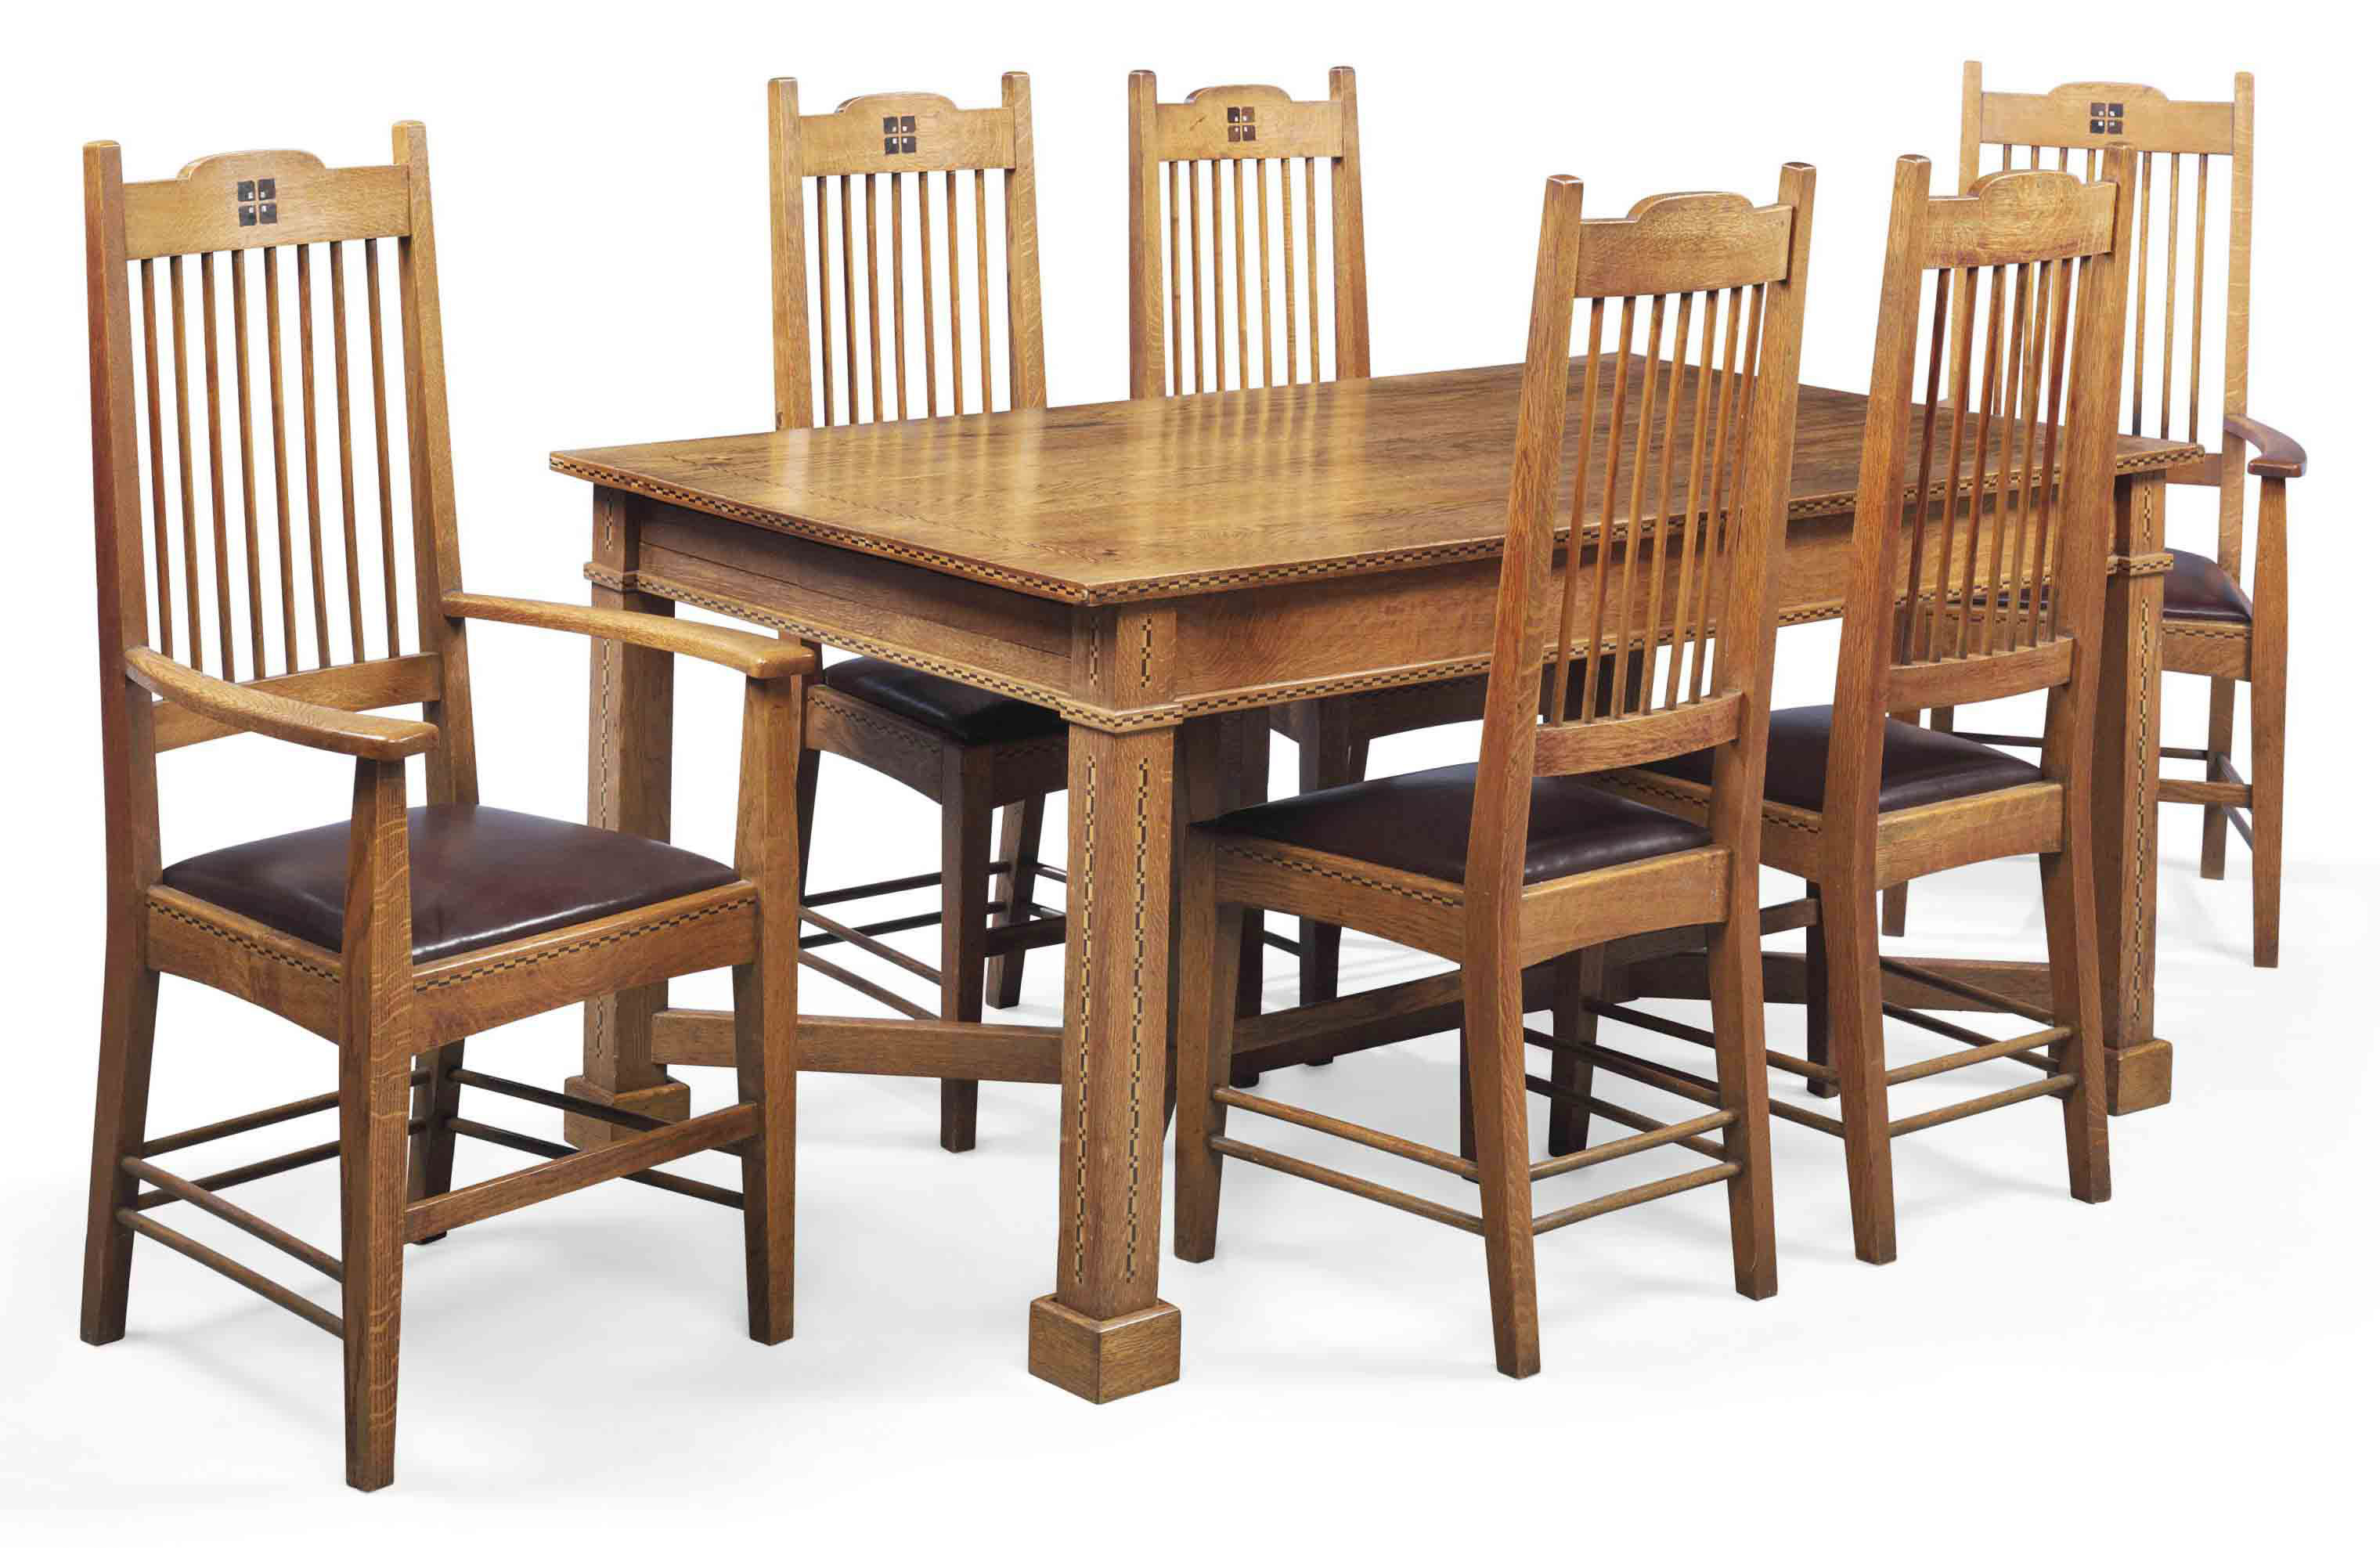 Arts And Crafts Dining Room: AN ARTS & CRAFTS INLAID OAK DINING ROOM SUITE , CIRCA 1910